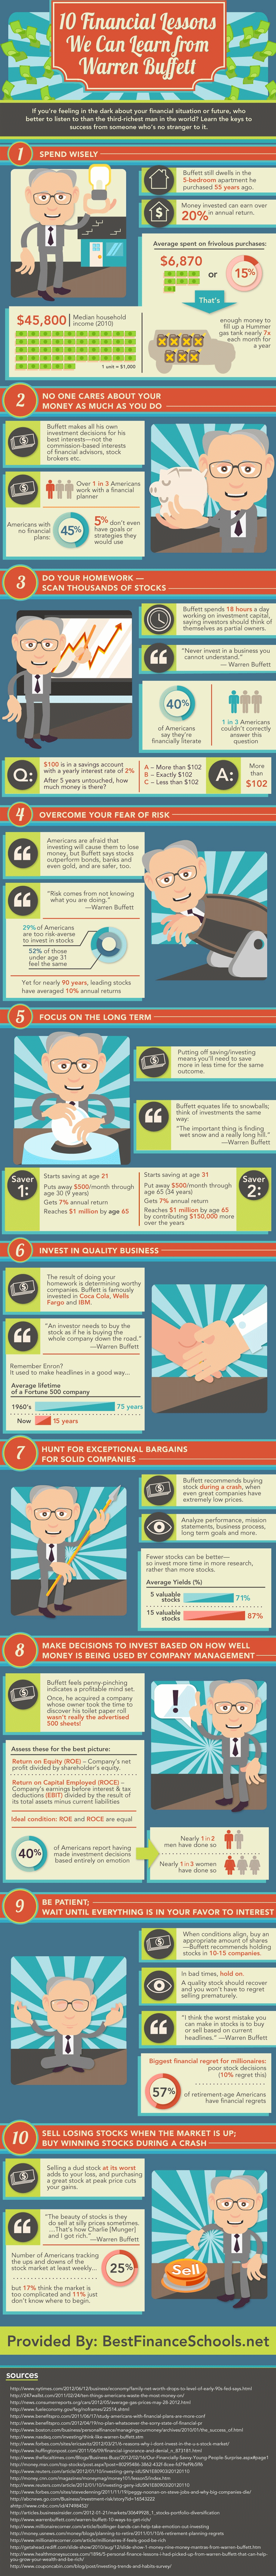 warren-buffett-infographic